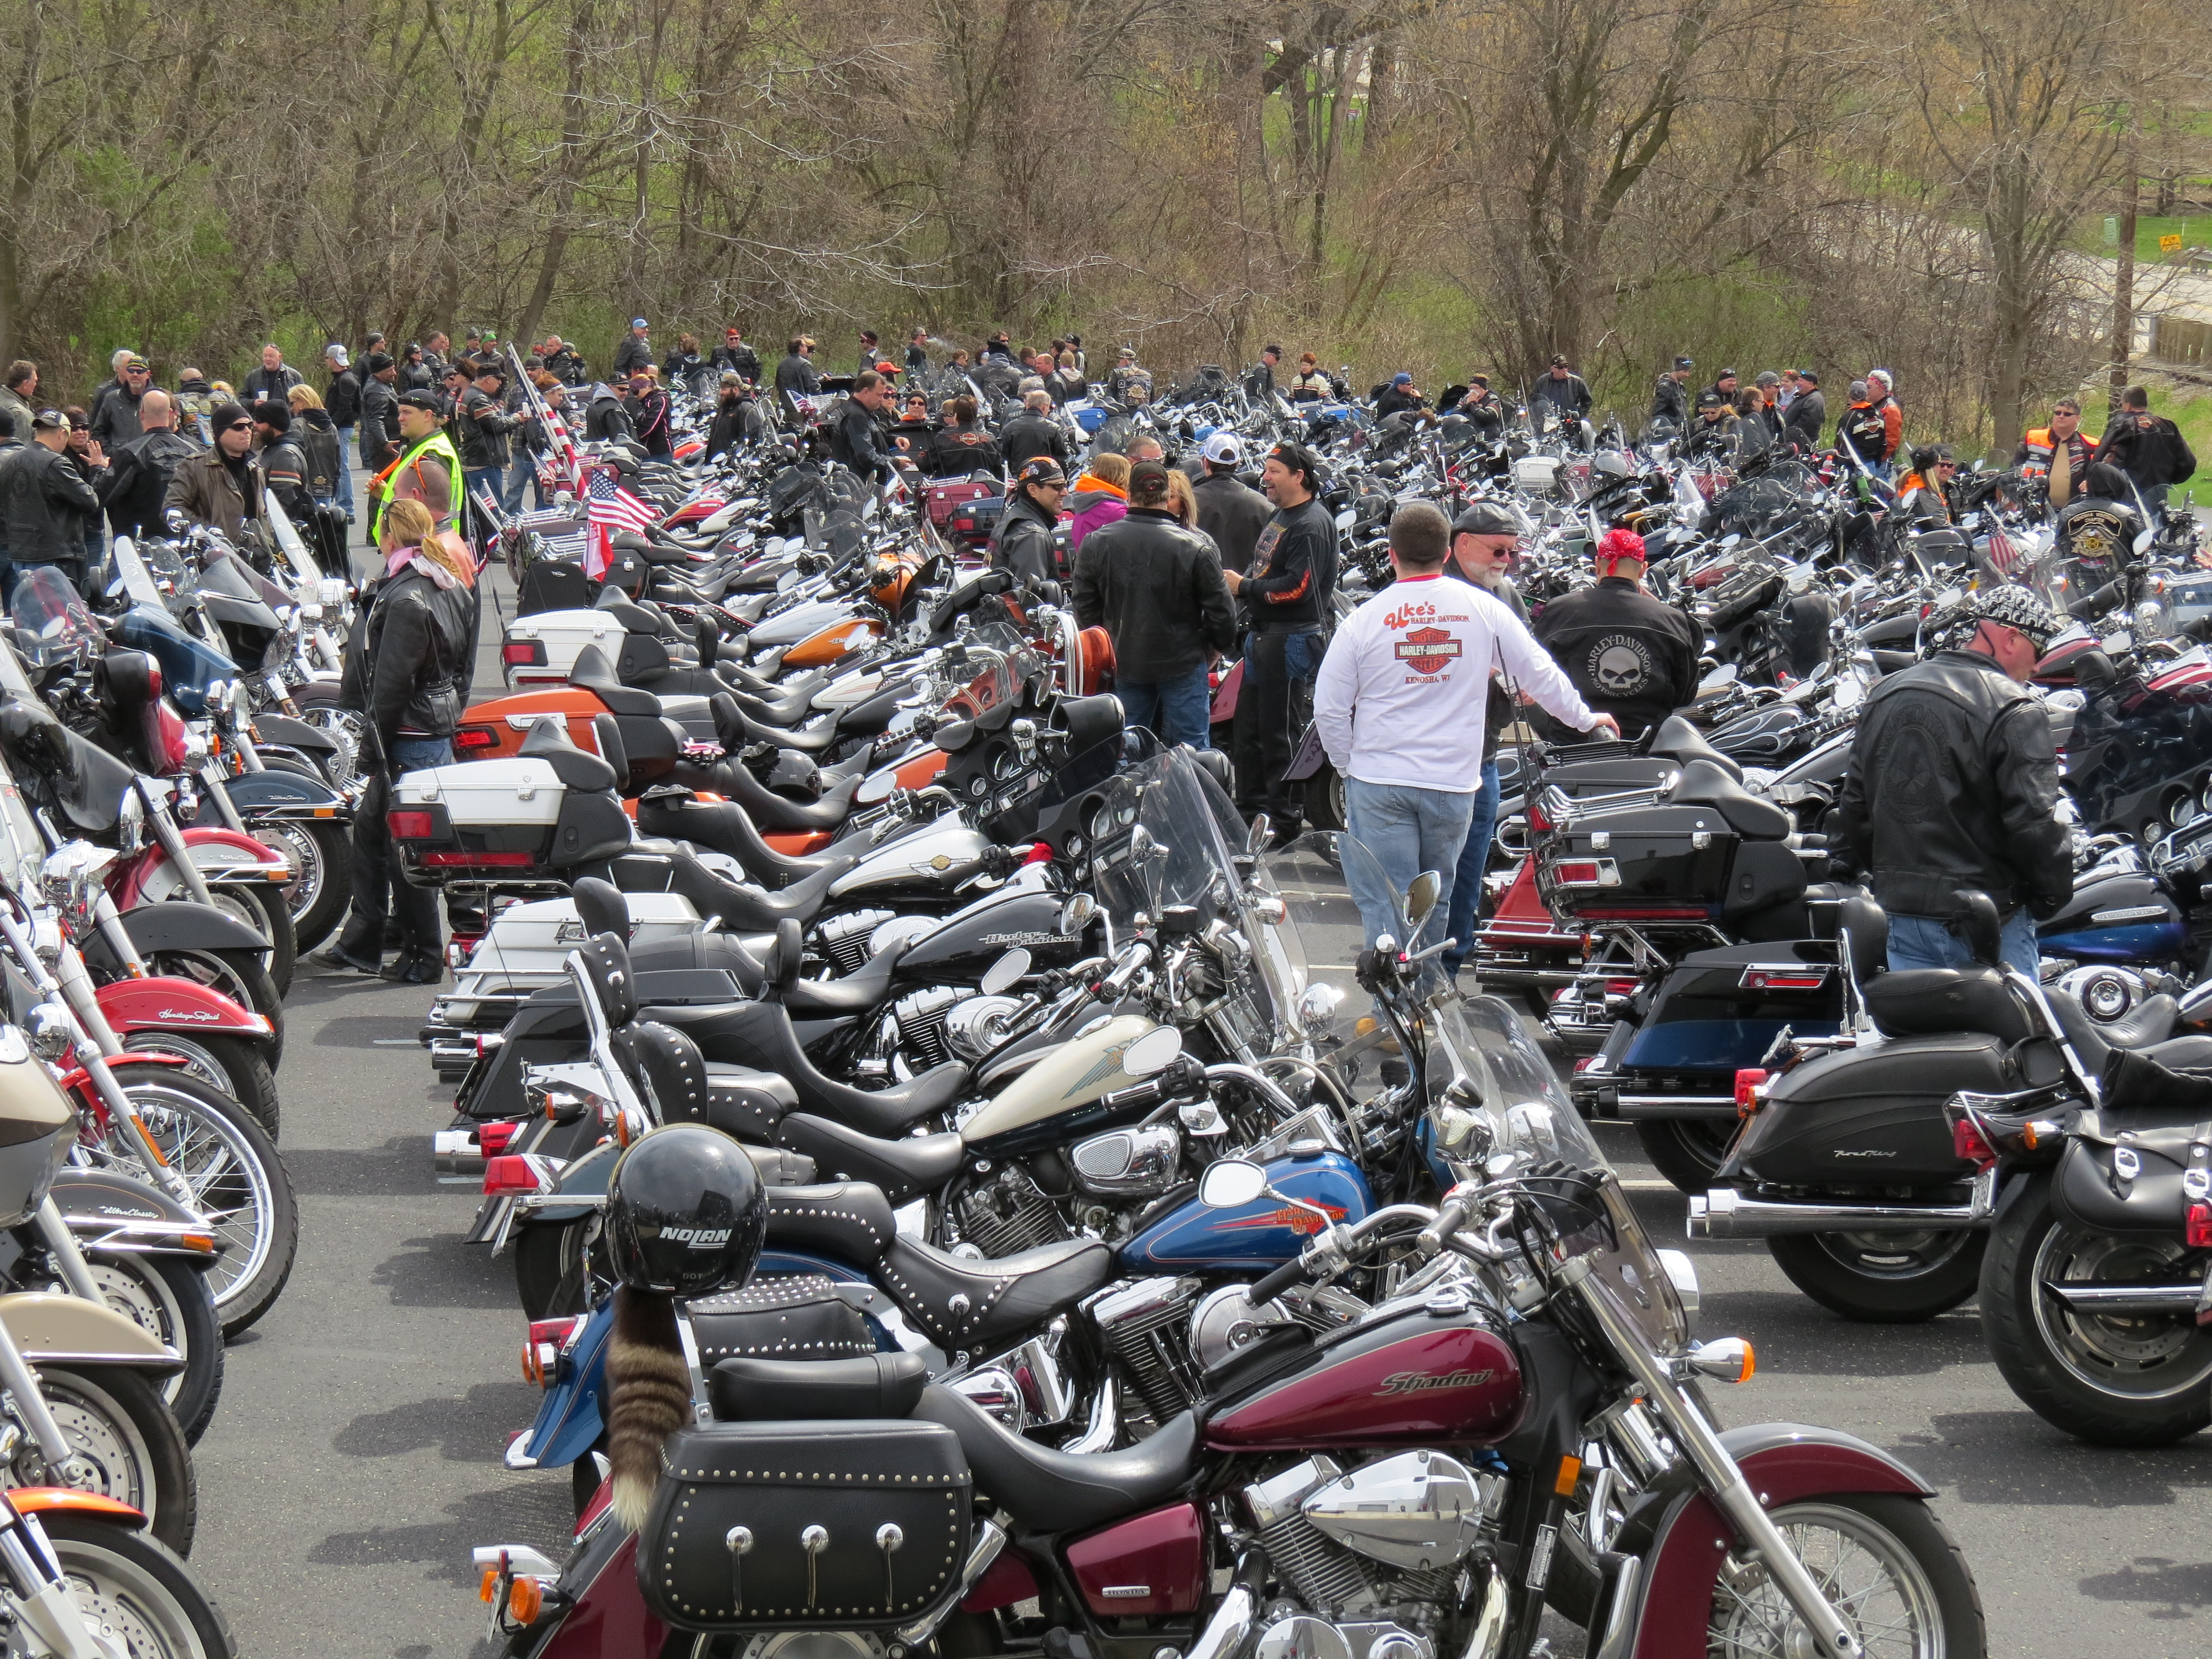 harley riders waiting for the annual blessing of the bikes ride in the staging area at